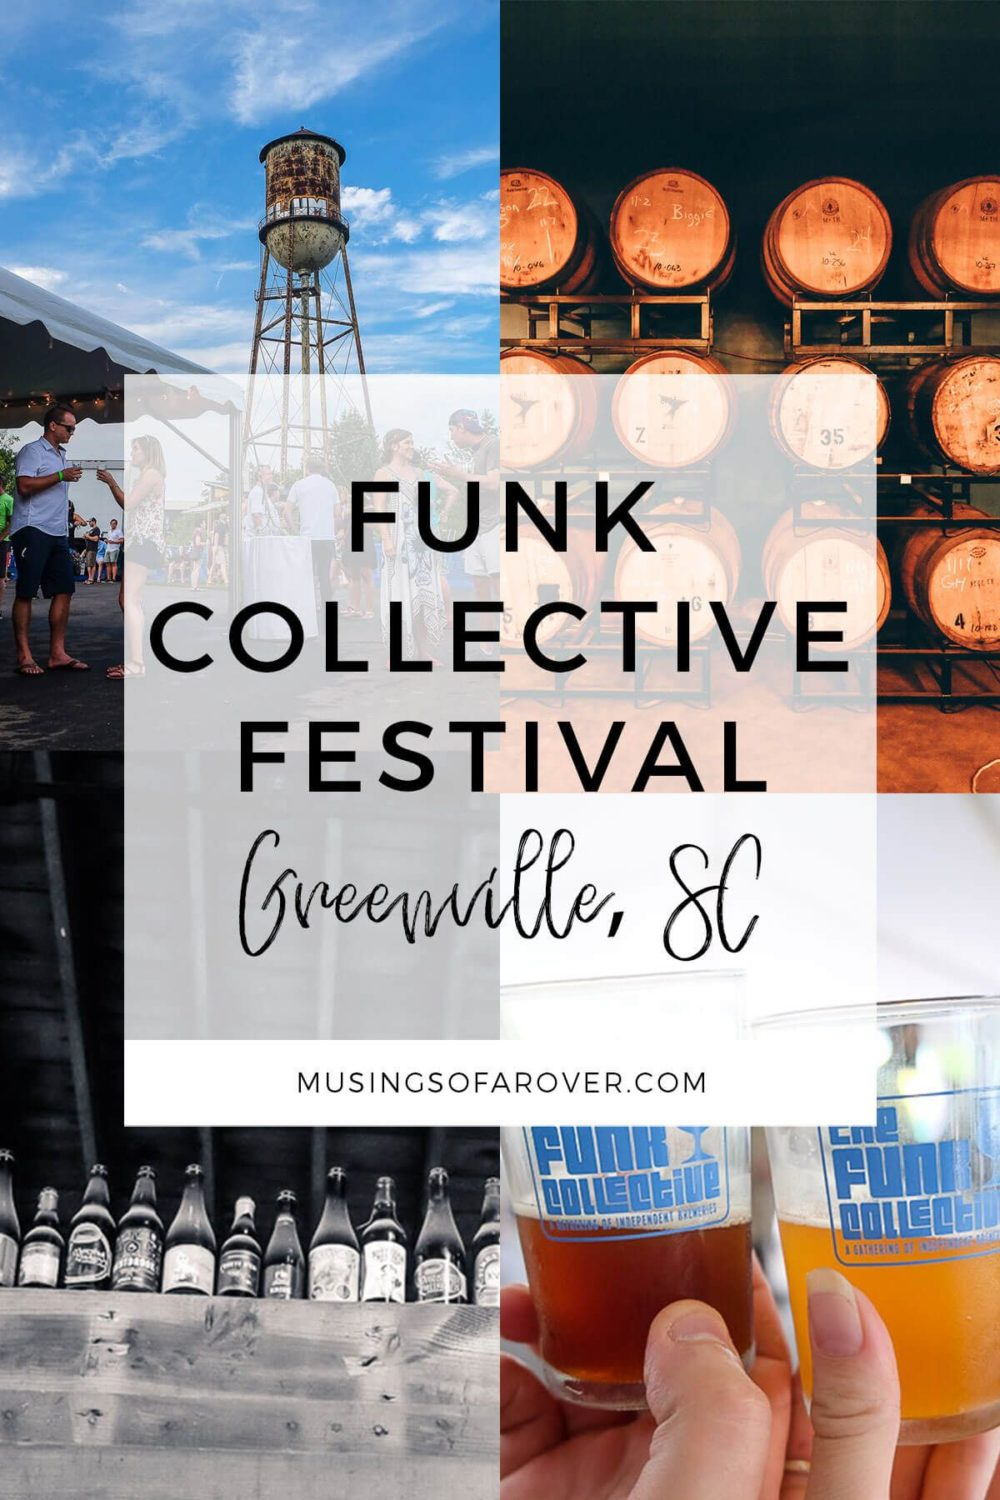 The Funk Collective Festival is a beer festival in Greenville, SC that focuses on sour and funky beers. It's hosted by Birds Fly South. Every other year you can find it at Revelry Brewery in Charleston, SC. Find out if you should go!